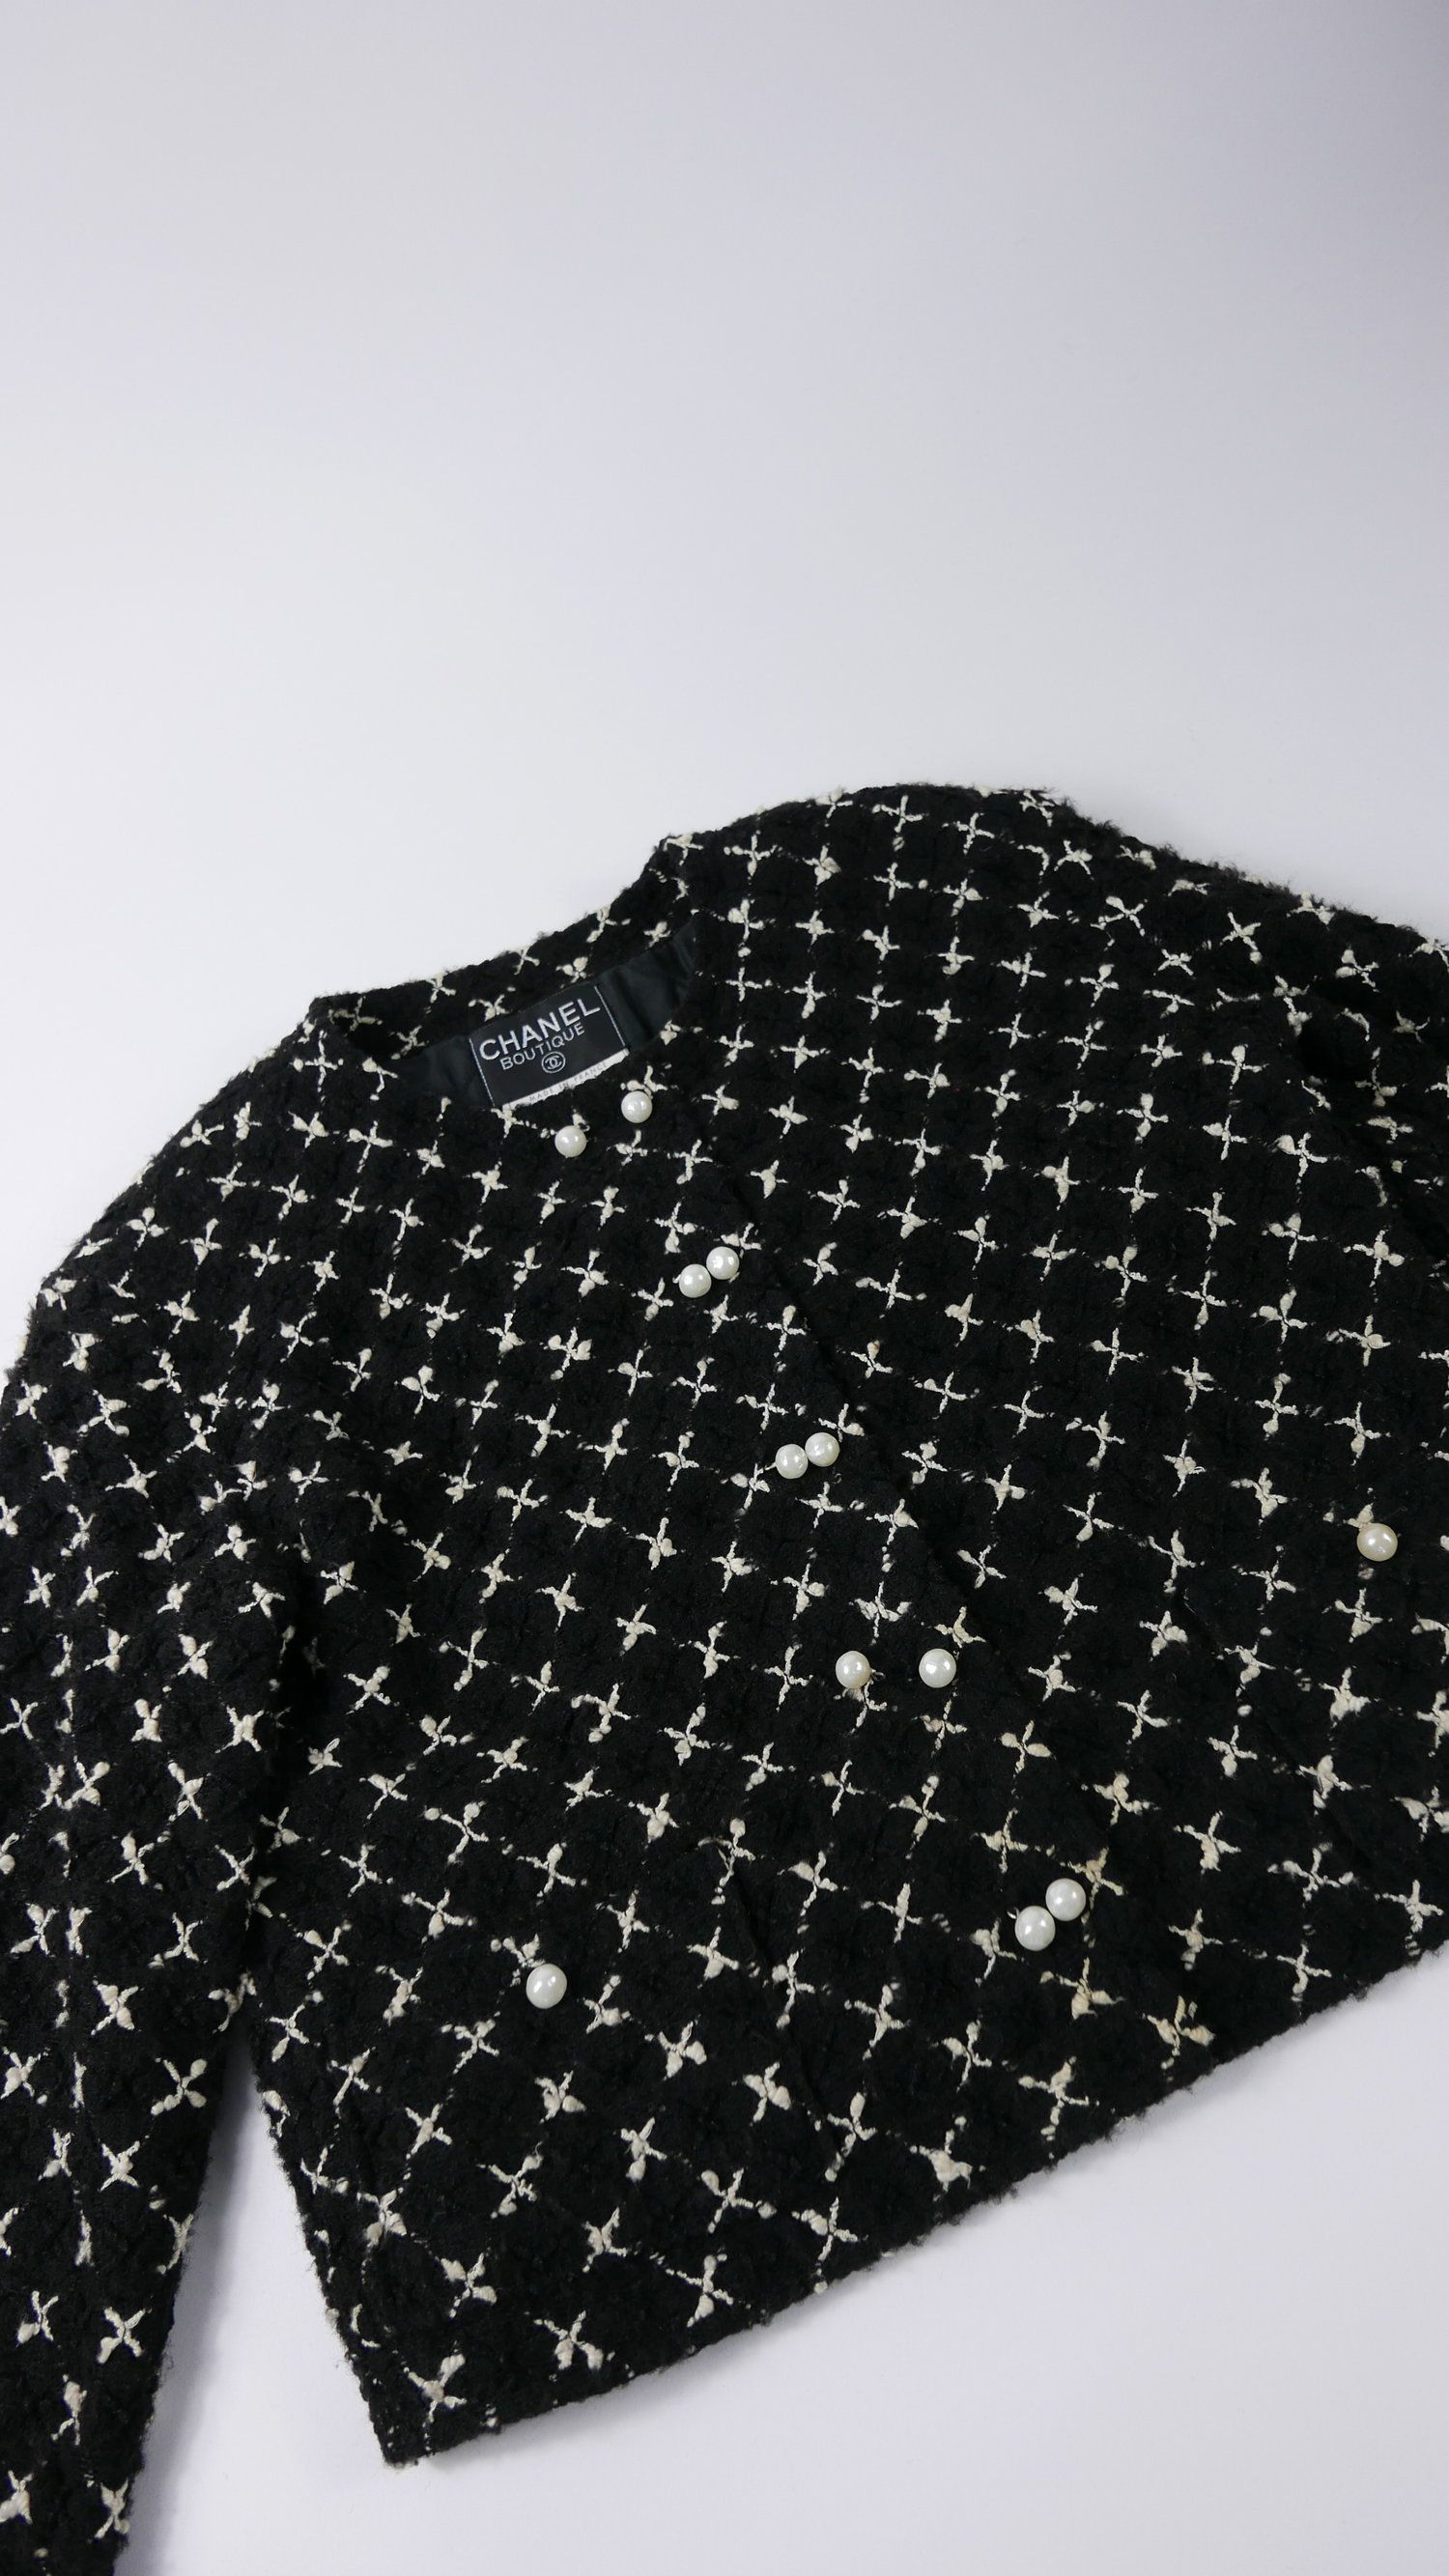 8c1d3c28c5d6 Authentic classic little black jacket Chanel white crosses and pearls, size  36, collection 2001 via KERN1STORE, Europe's first online store dedicated  to ...